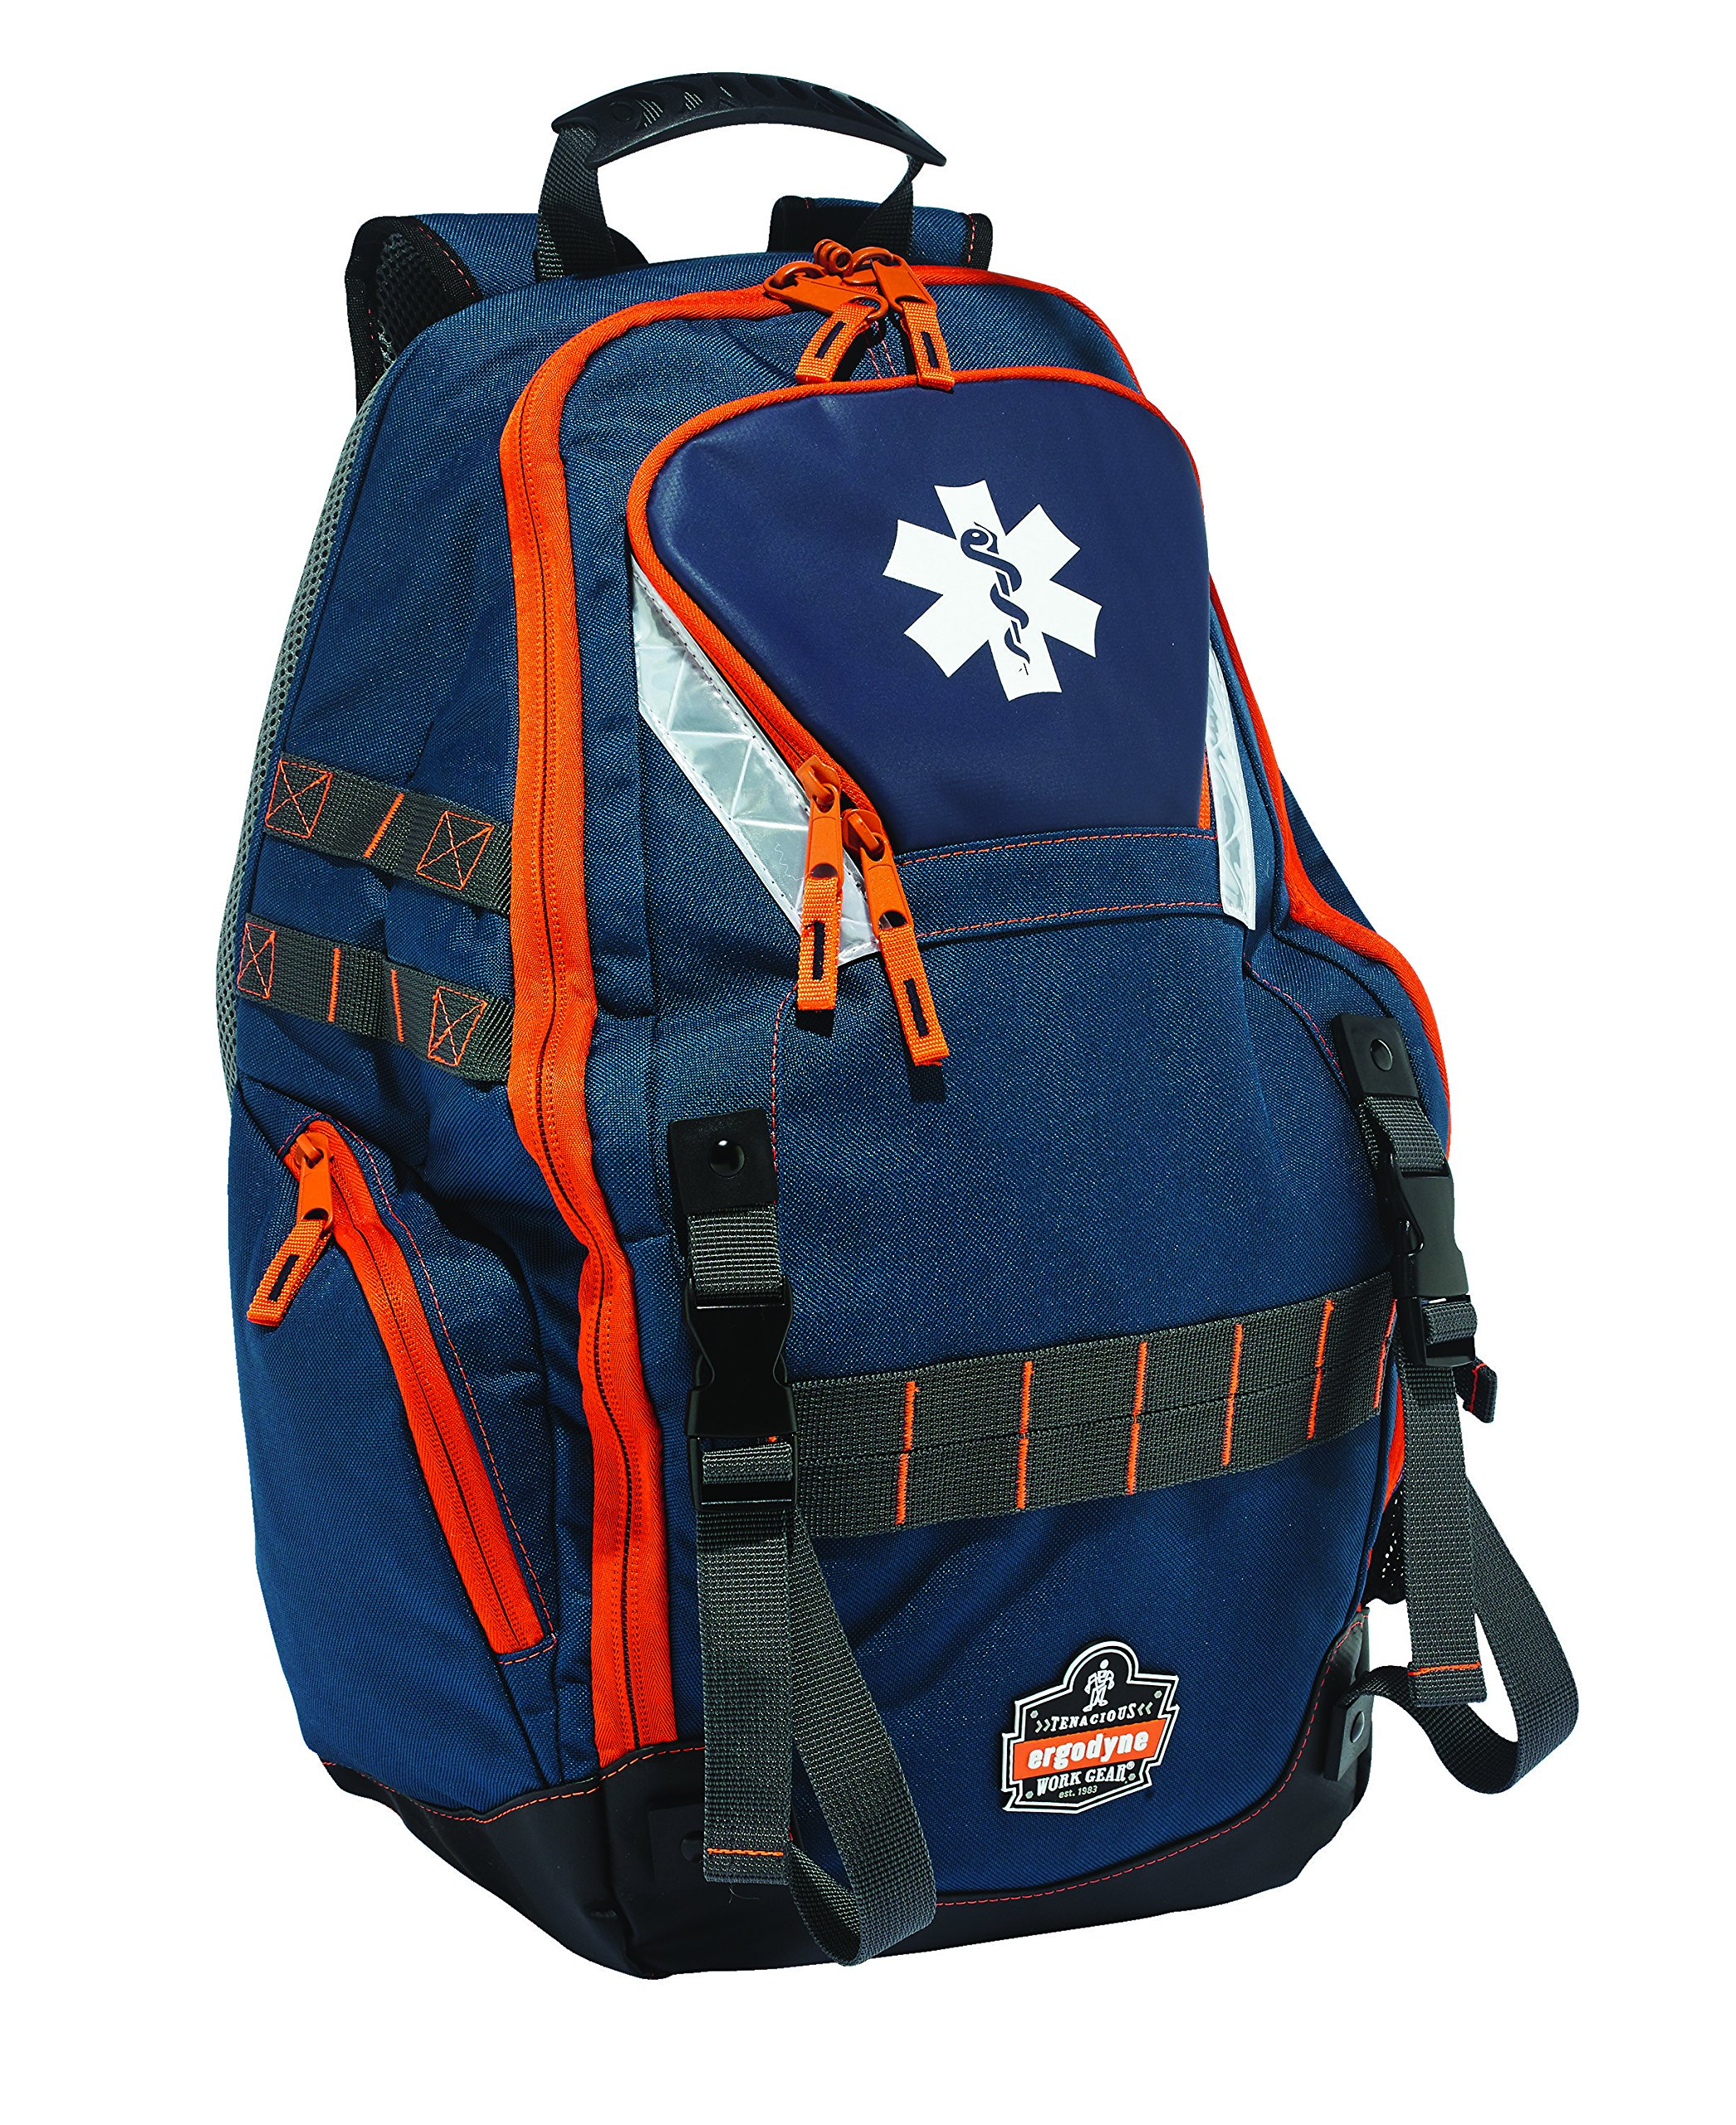 Ergodyne Arsenal 5244 Medic First Responder Trauma Backpack Jump Bag for EMS, Police, Firefighters by Ergodyne